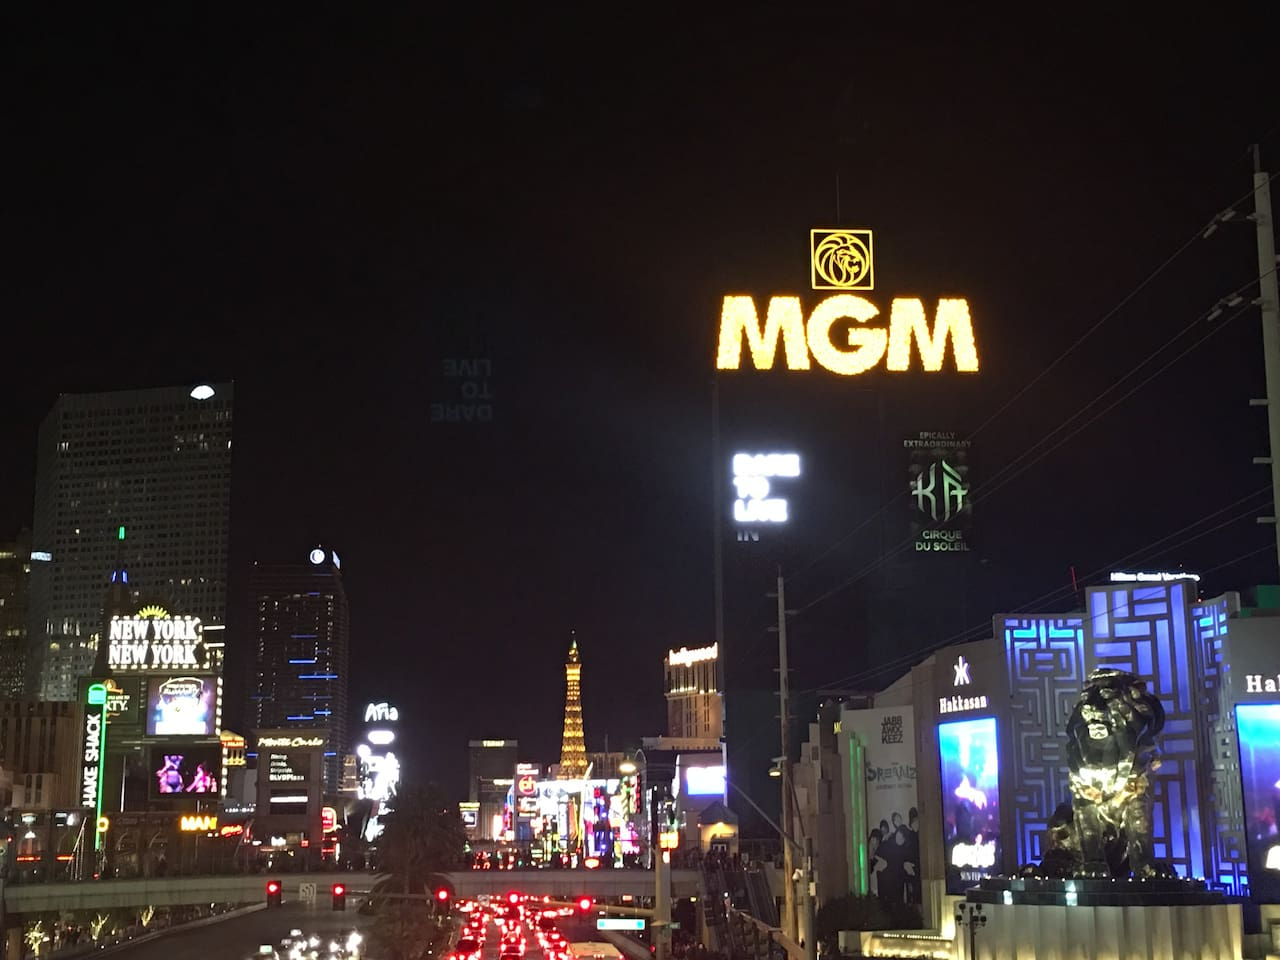 Penthouse is in the MGM right on the stunning Las Vegas Strip